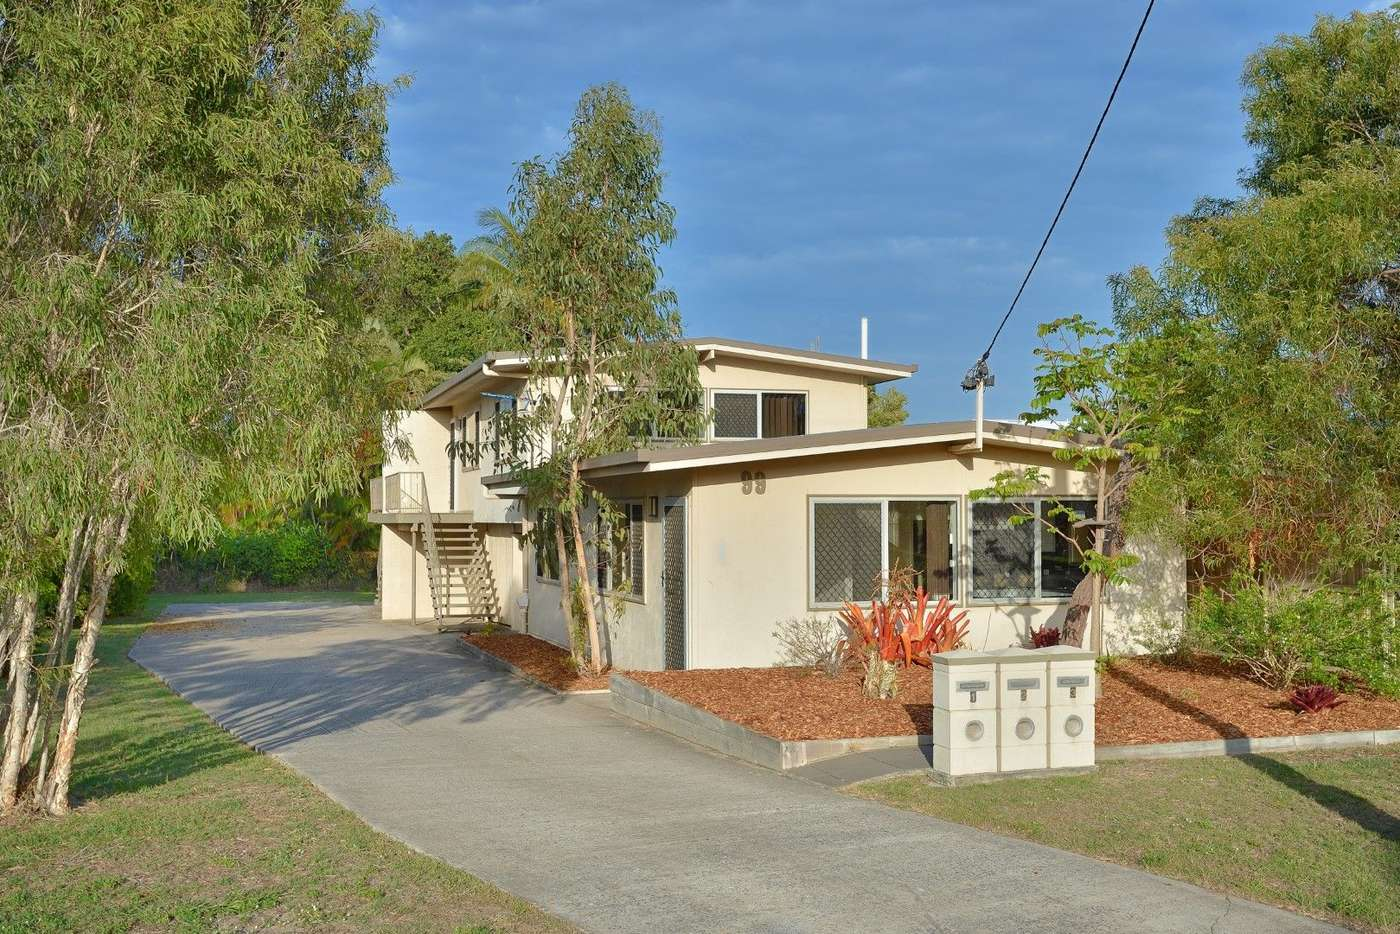 Main view of Homely blockOfUnits listing, 99 Barney Street, Barney Point QLD 4680